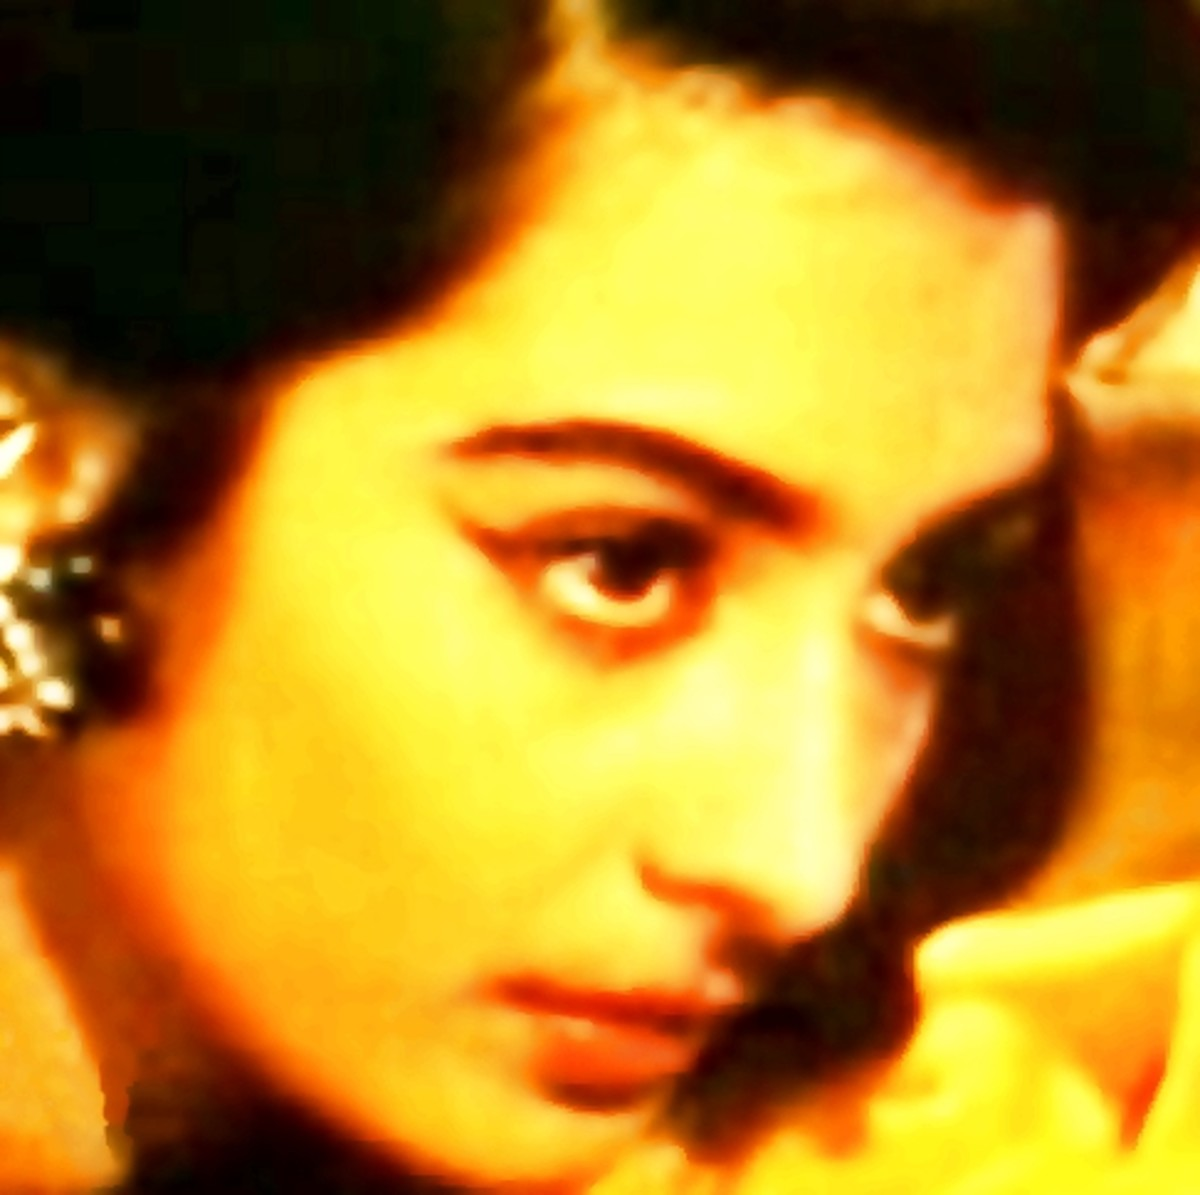 A great song with equal dose of raag and emotions from Rafi